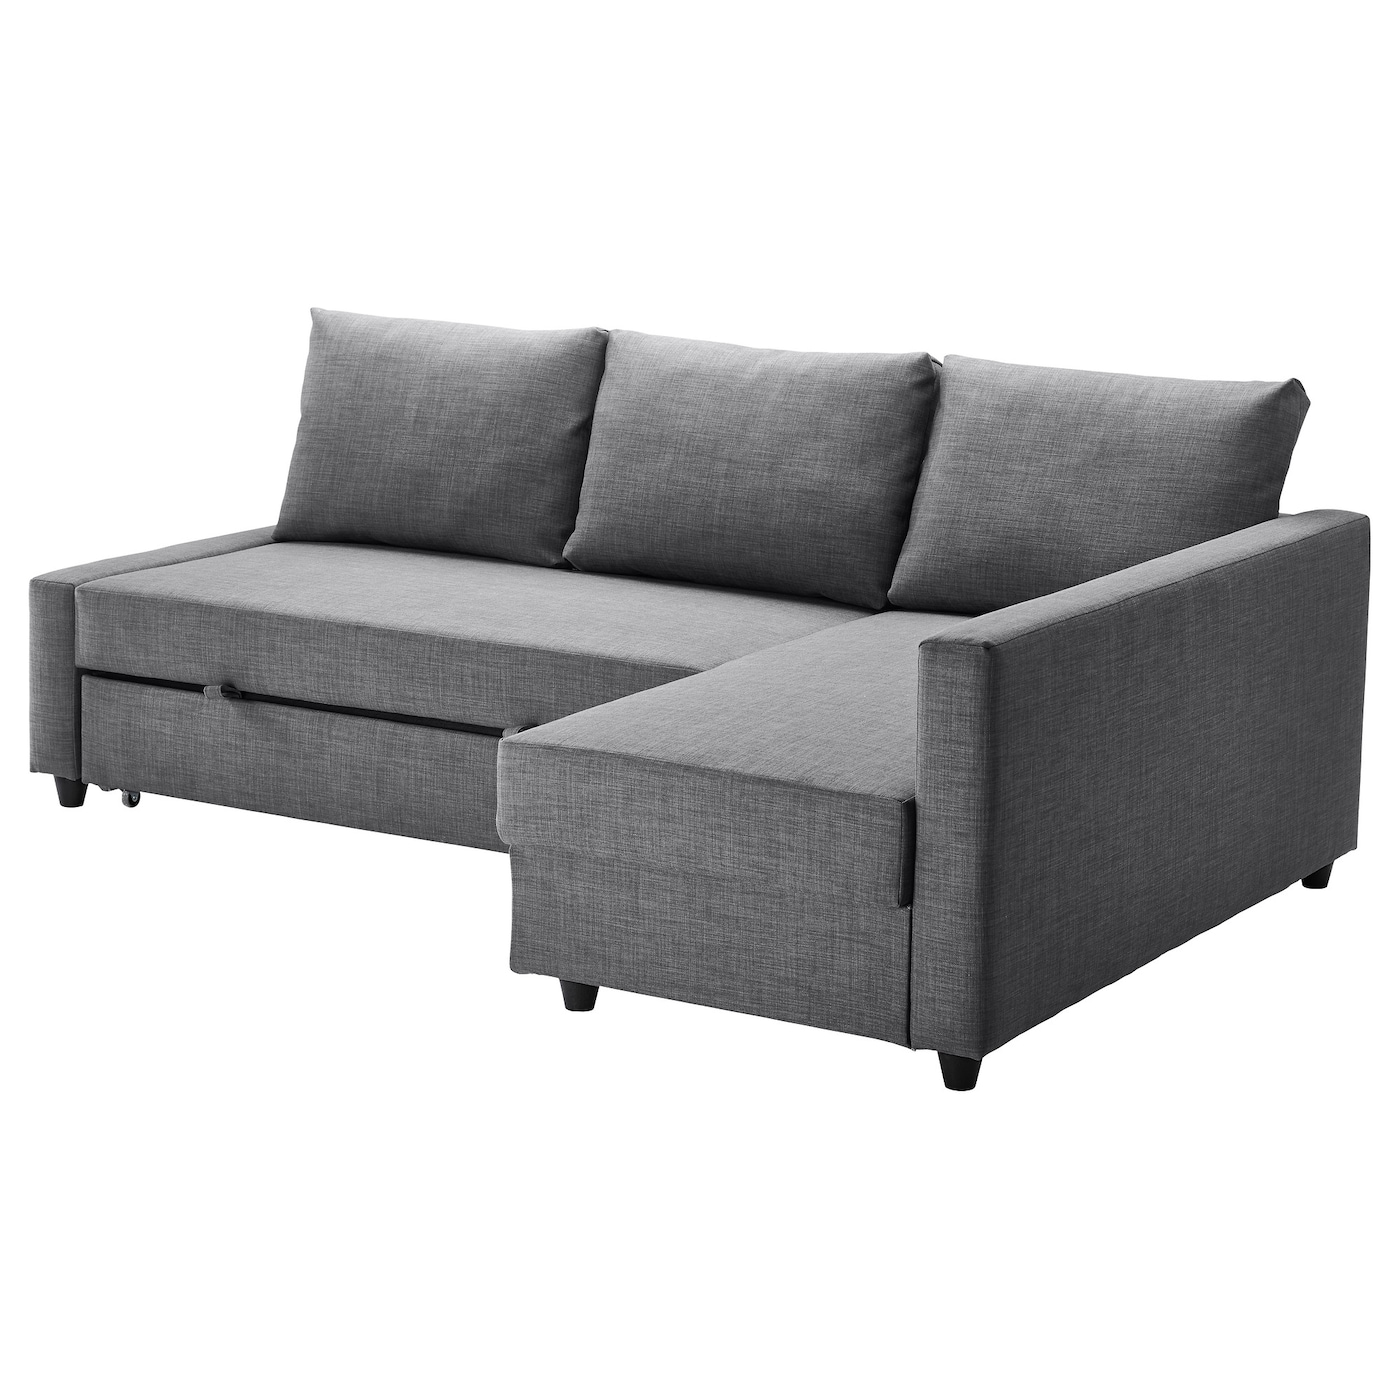 Picture of: Friheten Corner Sofa Bed With Storage Skiftebo Dark Grey Ikea Ireland